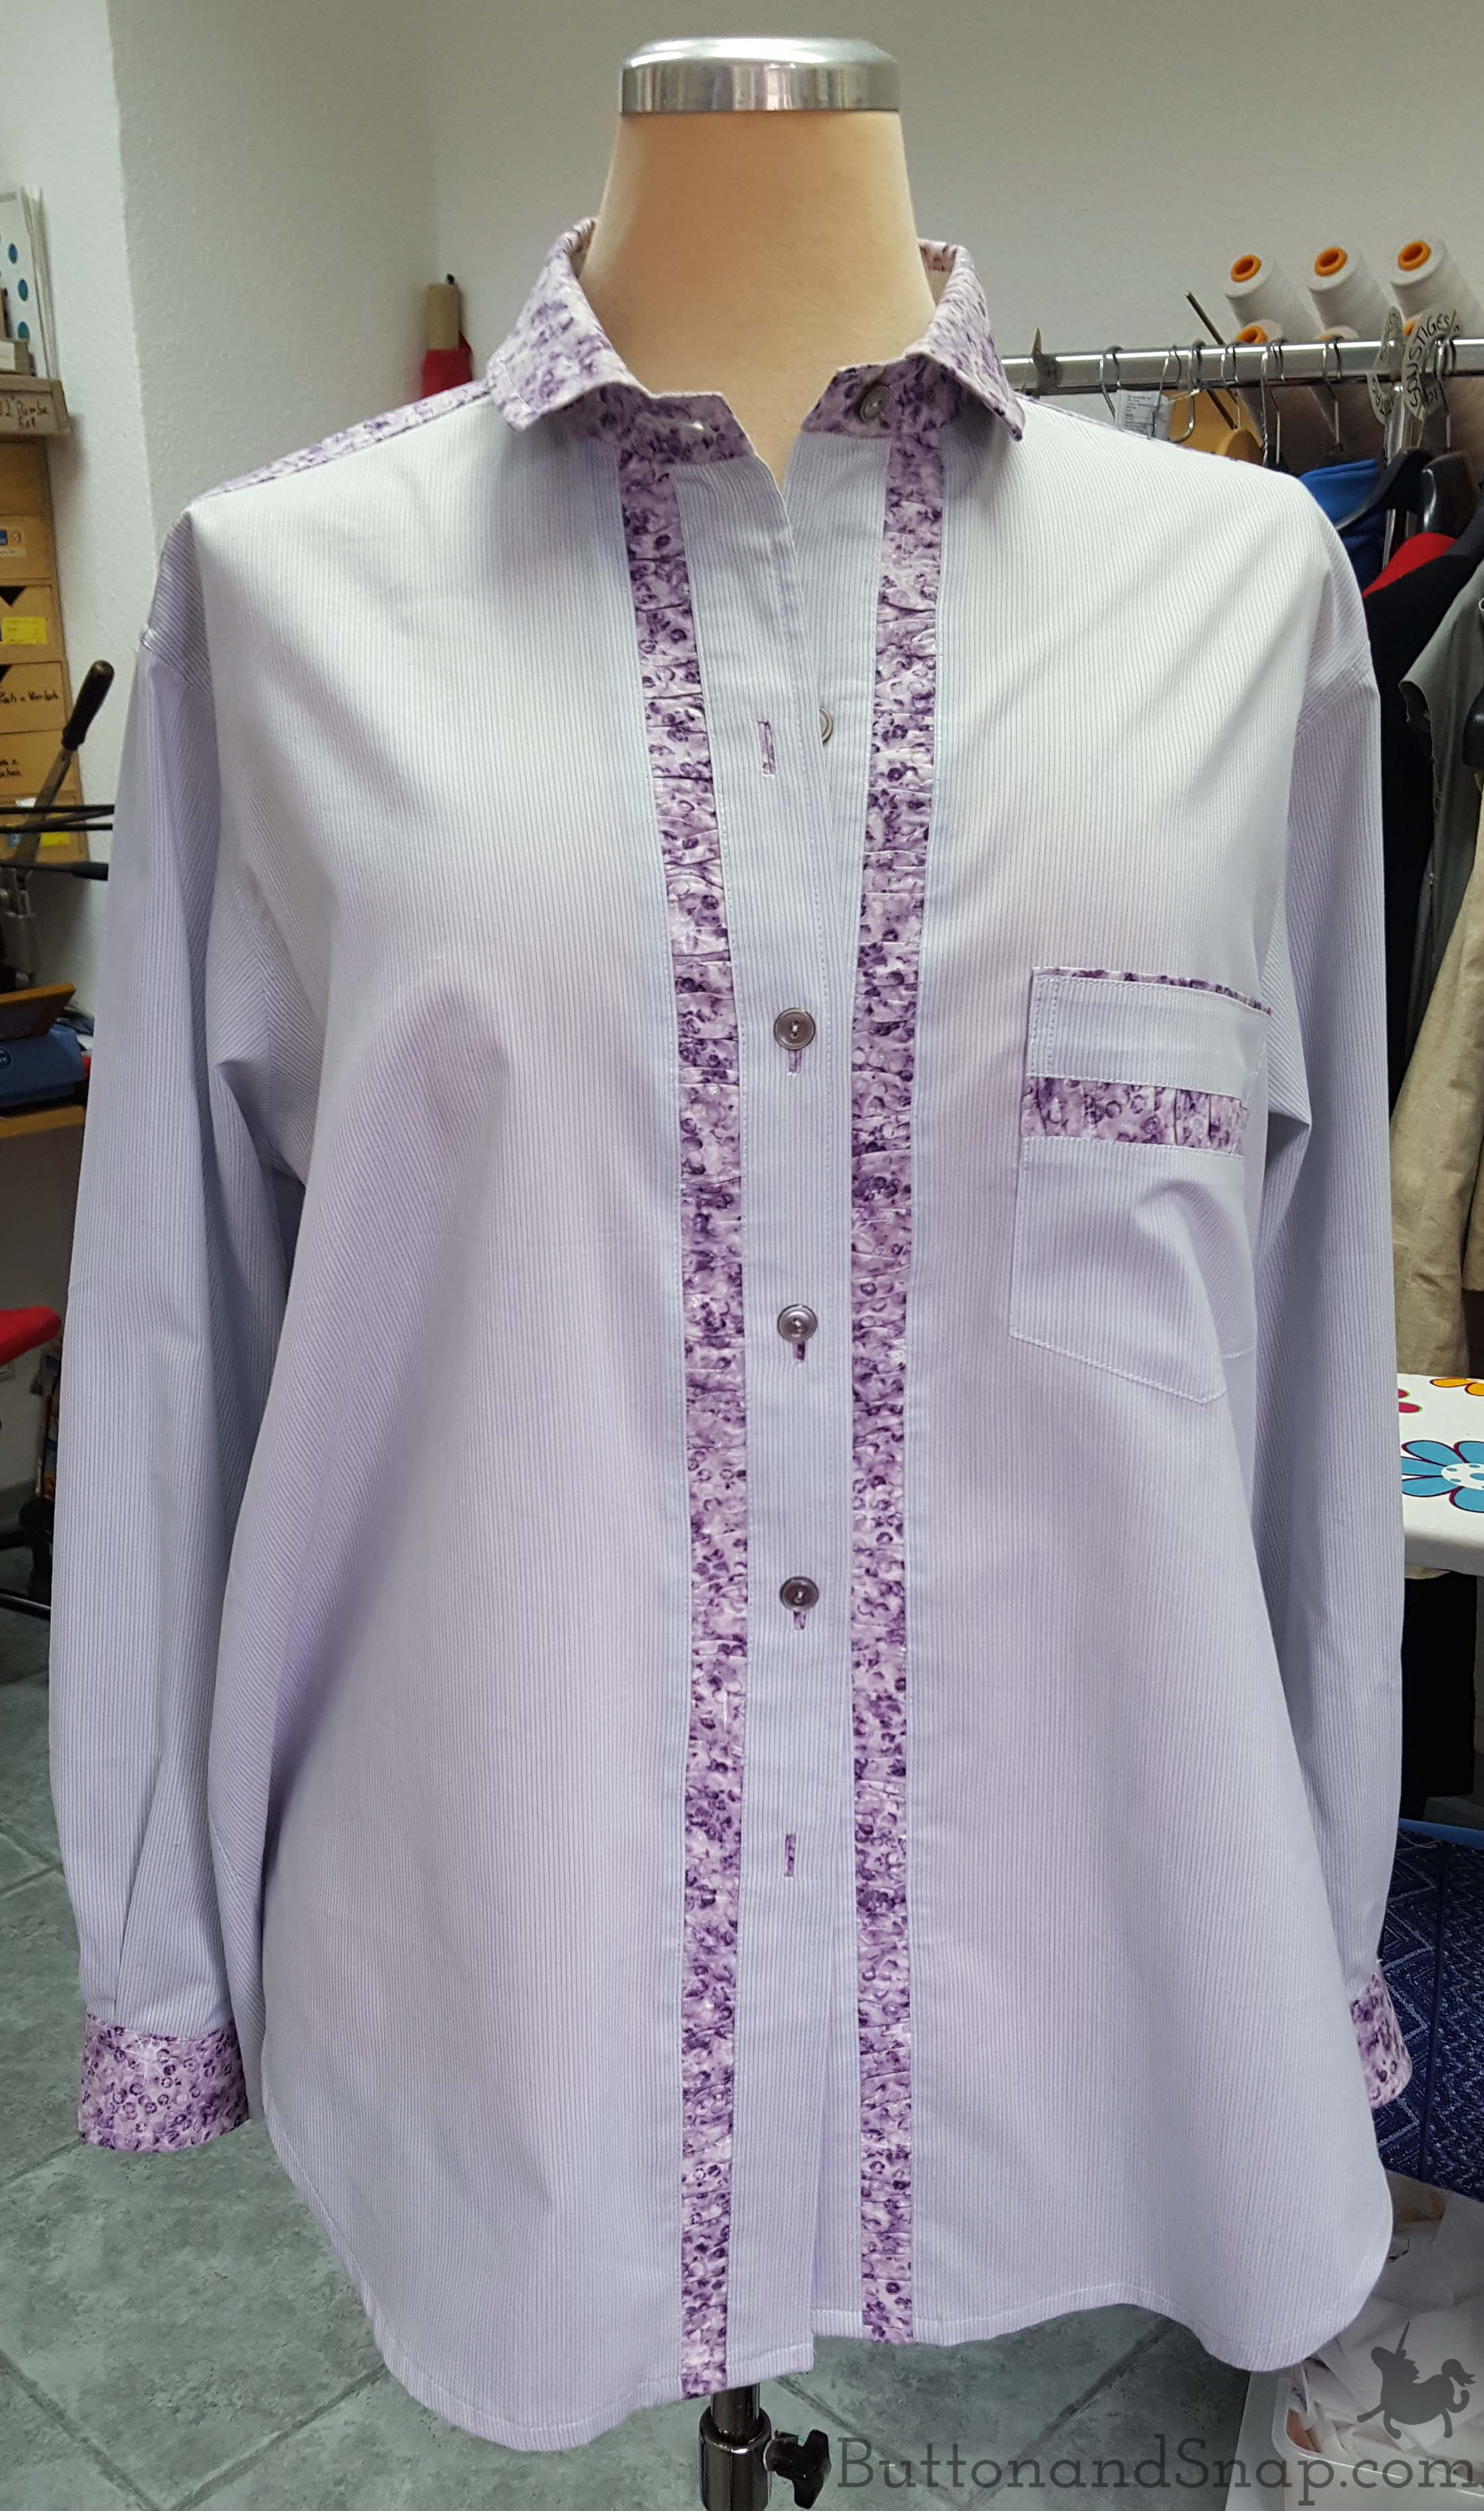 lilac-blouse-front_full-copy